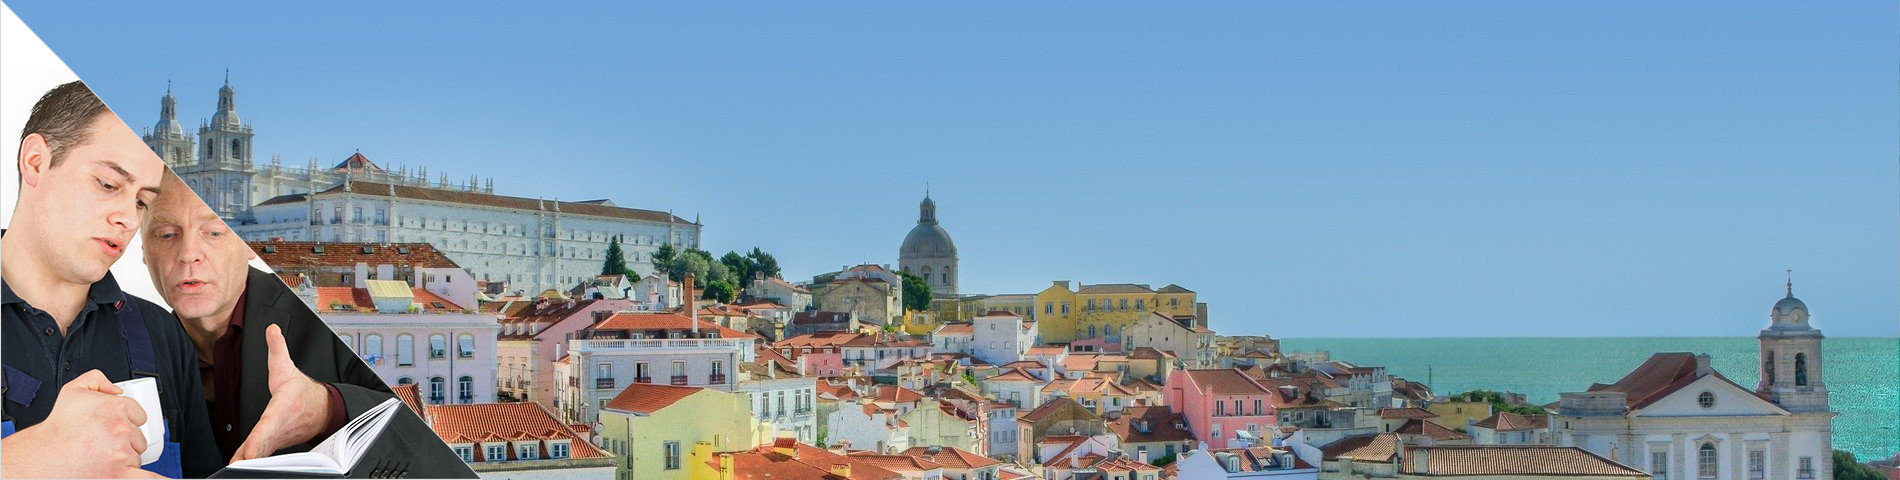 Lisbon - One-to-One